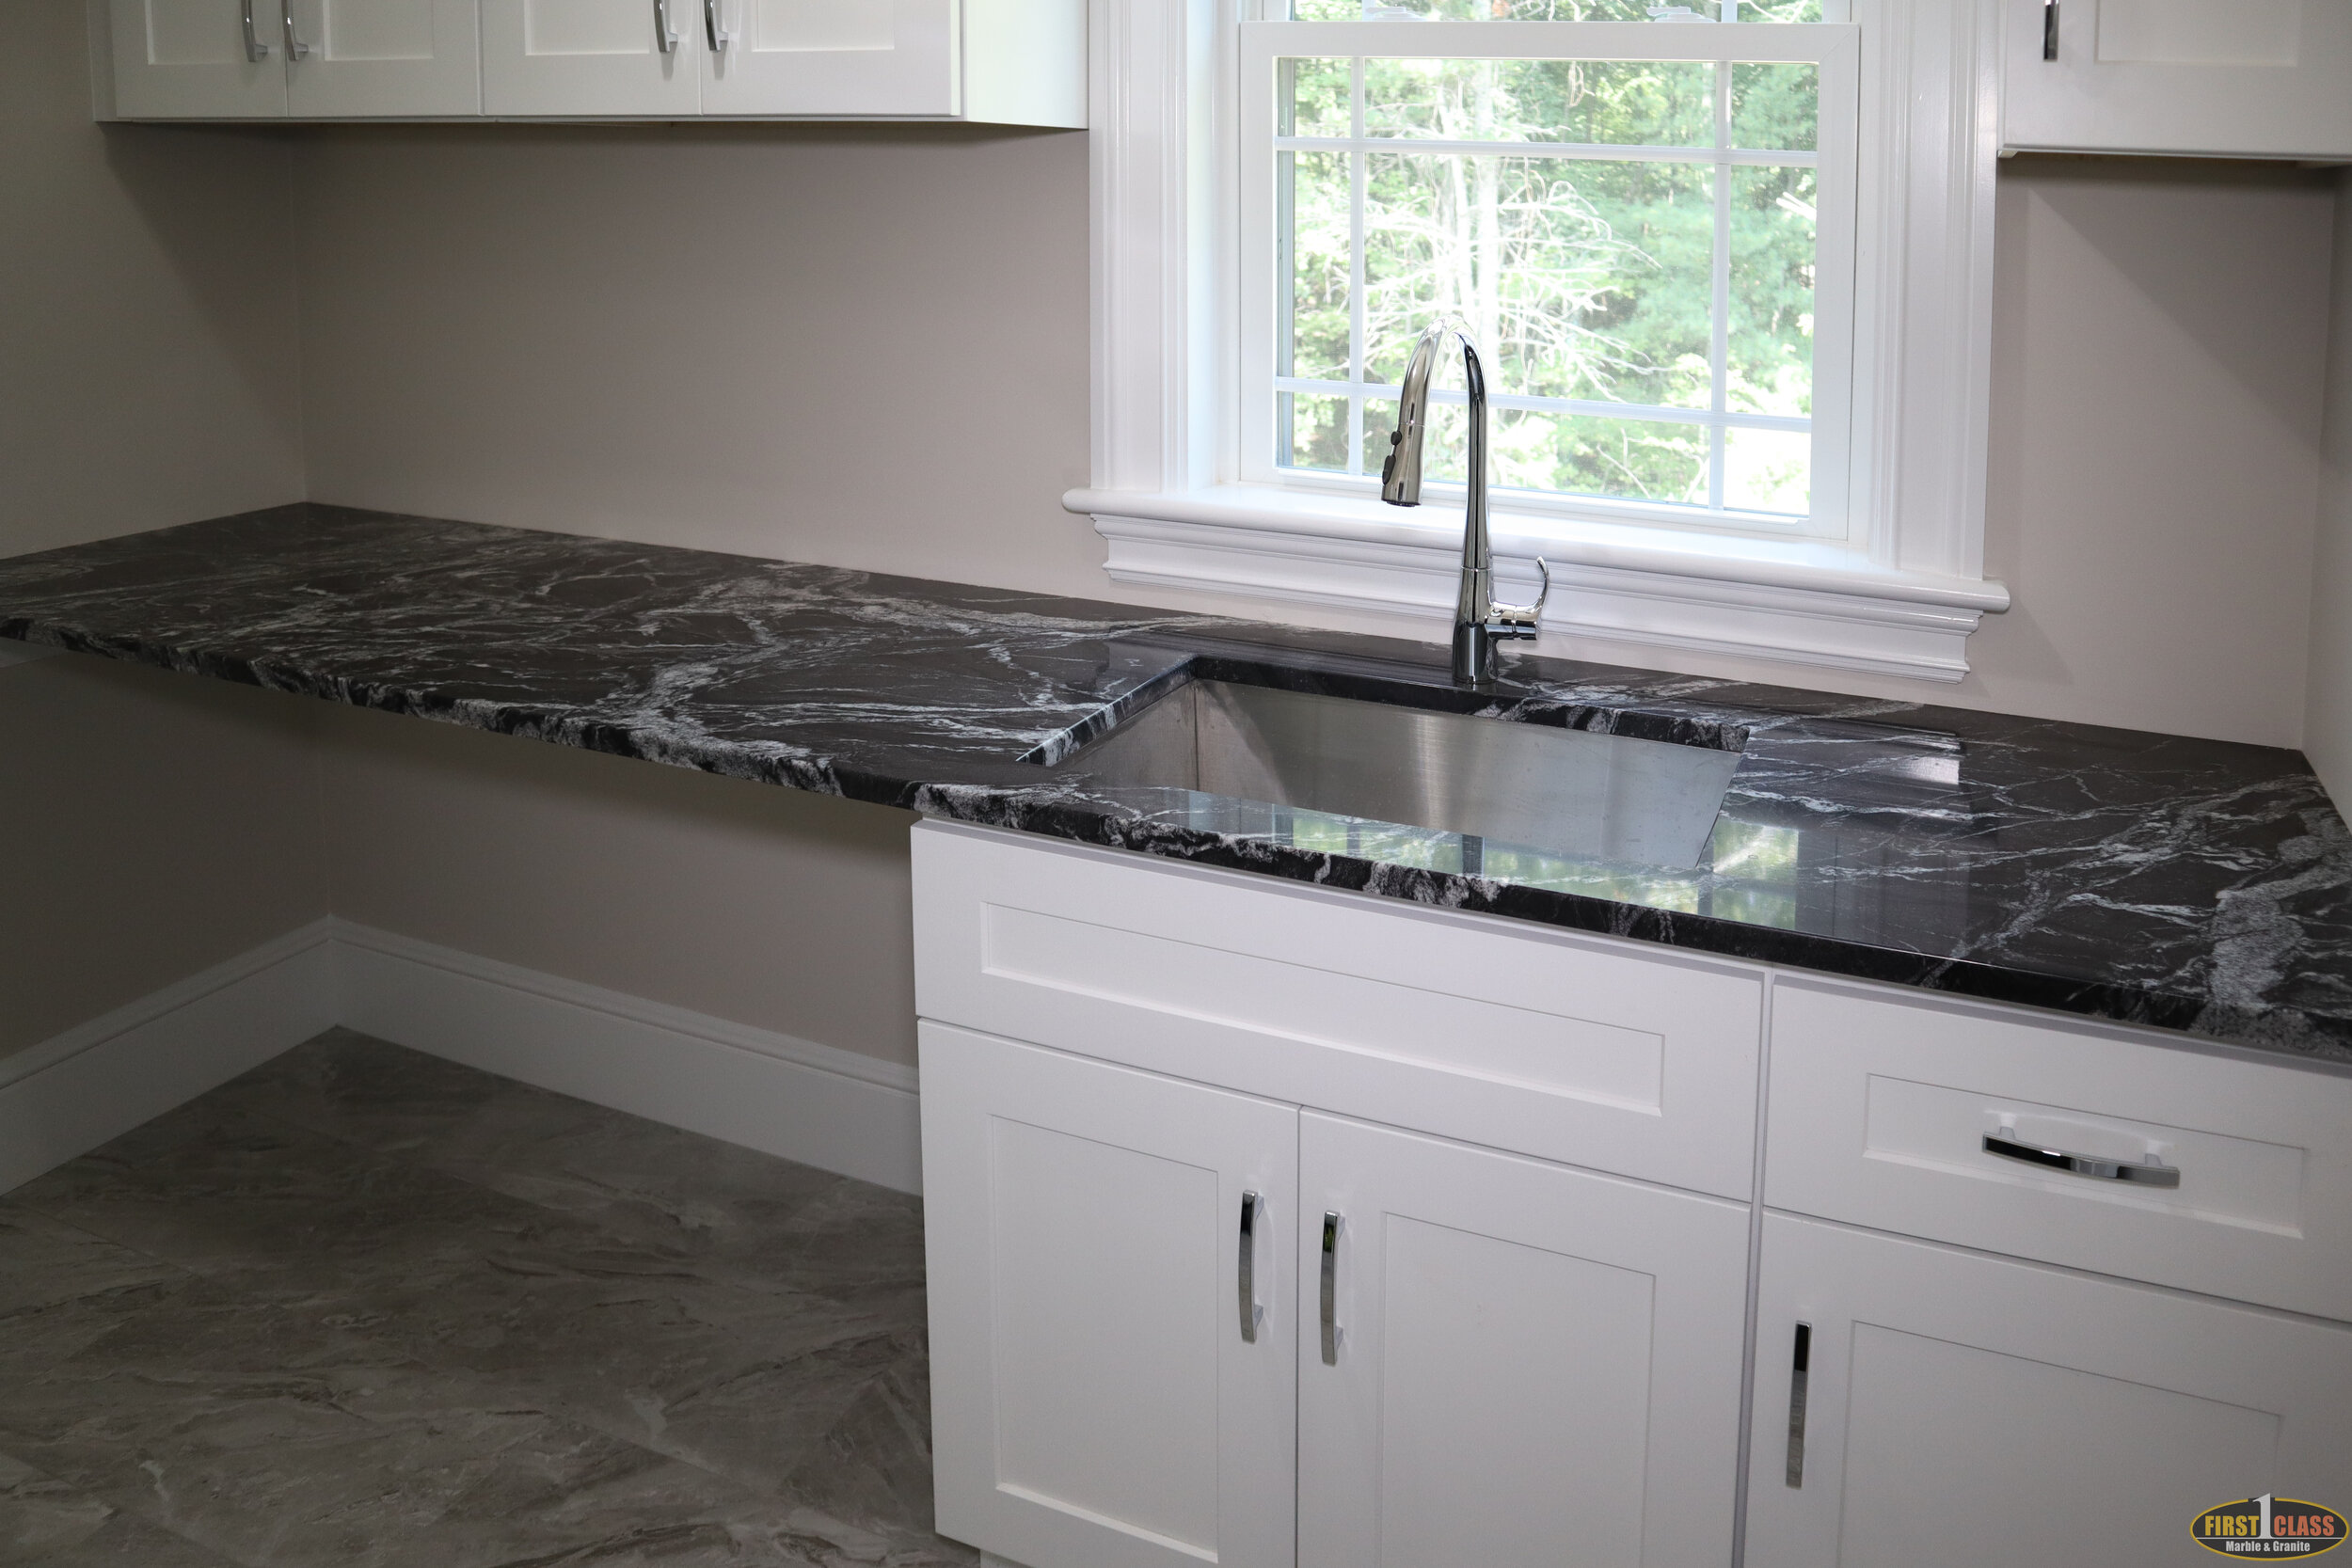 Material: Silver Wave  Thickness, Finish & Stone Type: 3CM Polished Granite  Edge: Eased  Sink: ZP2516 HMZ